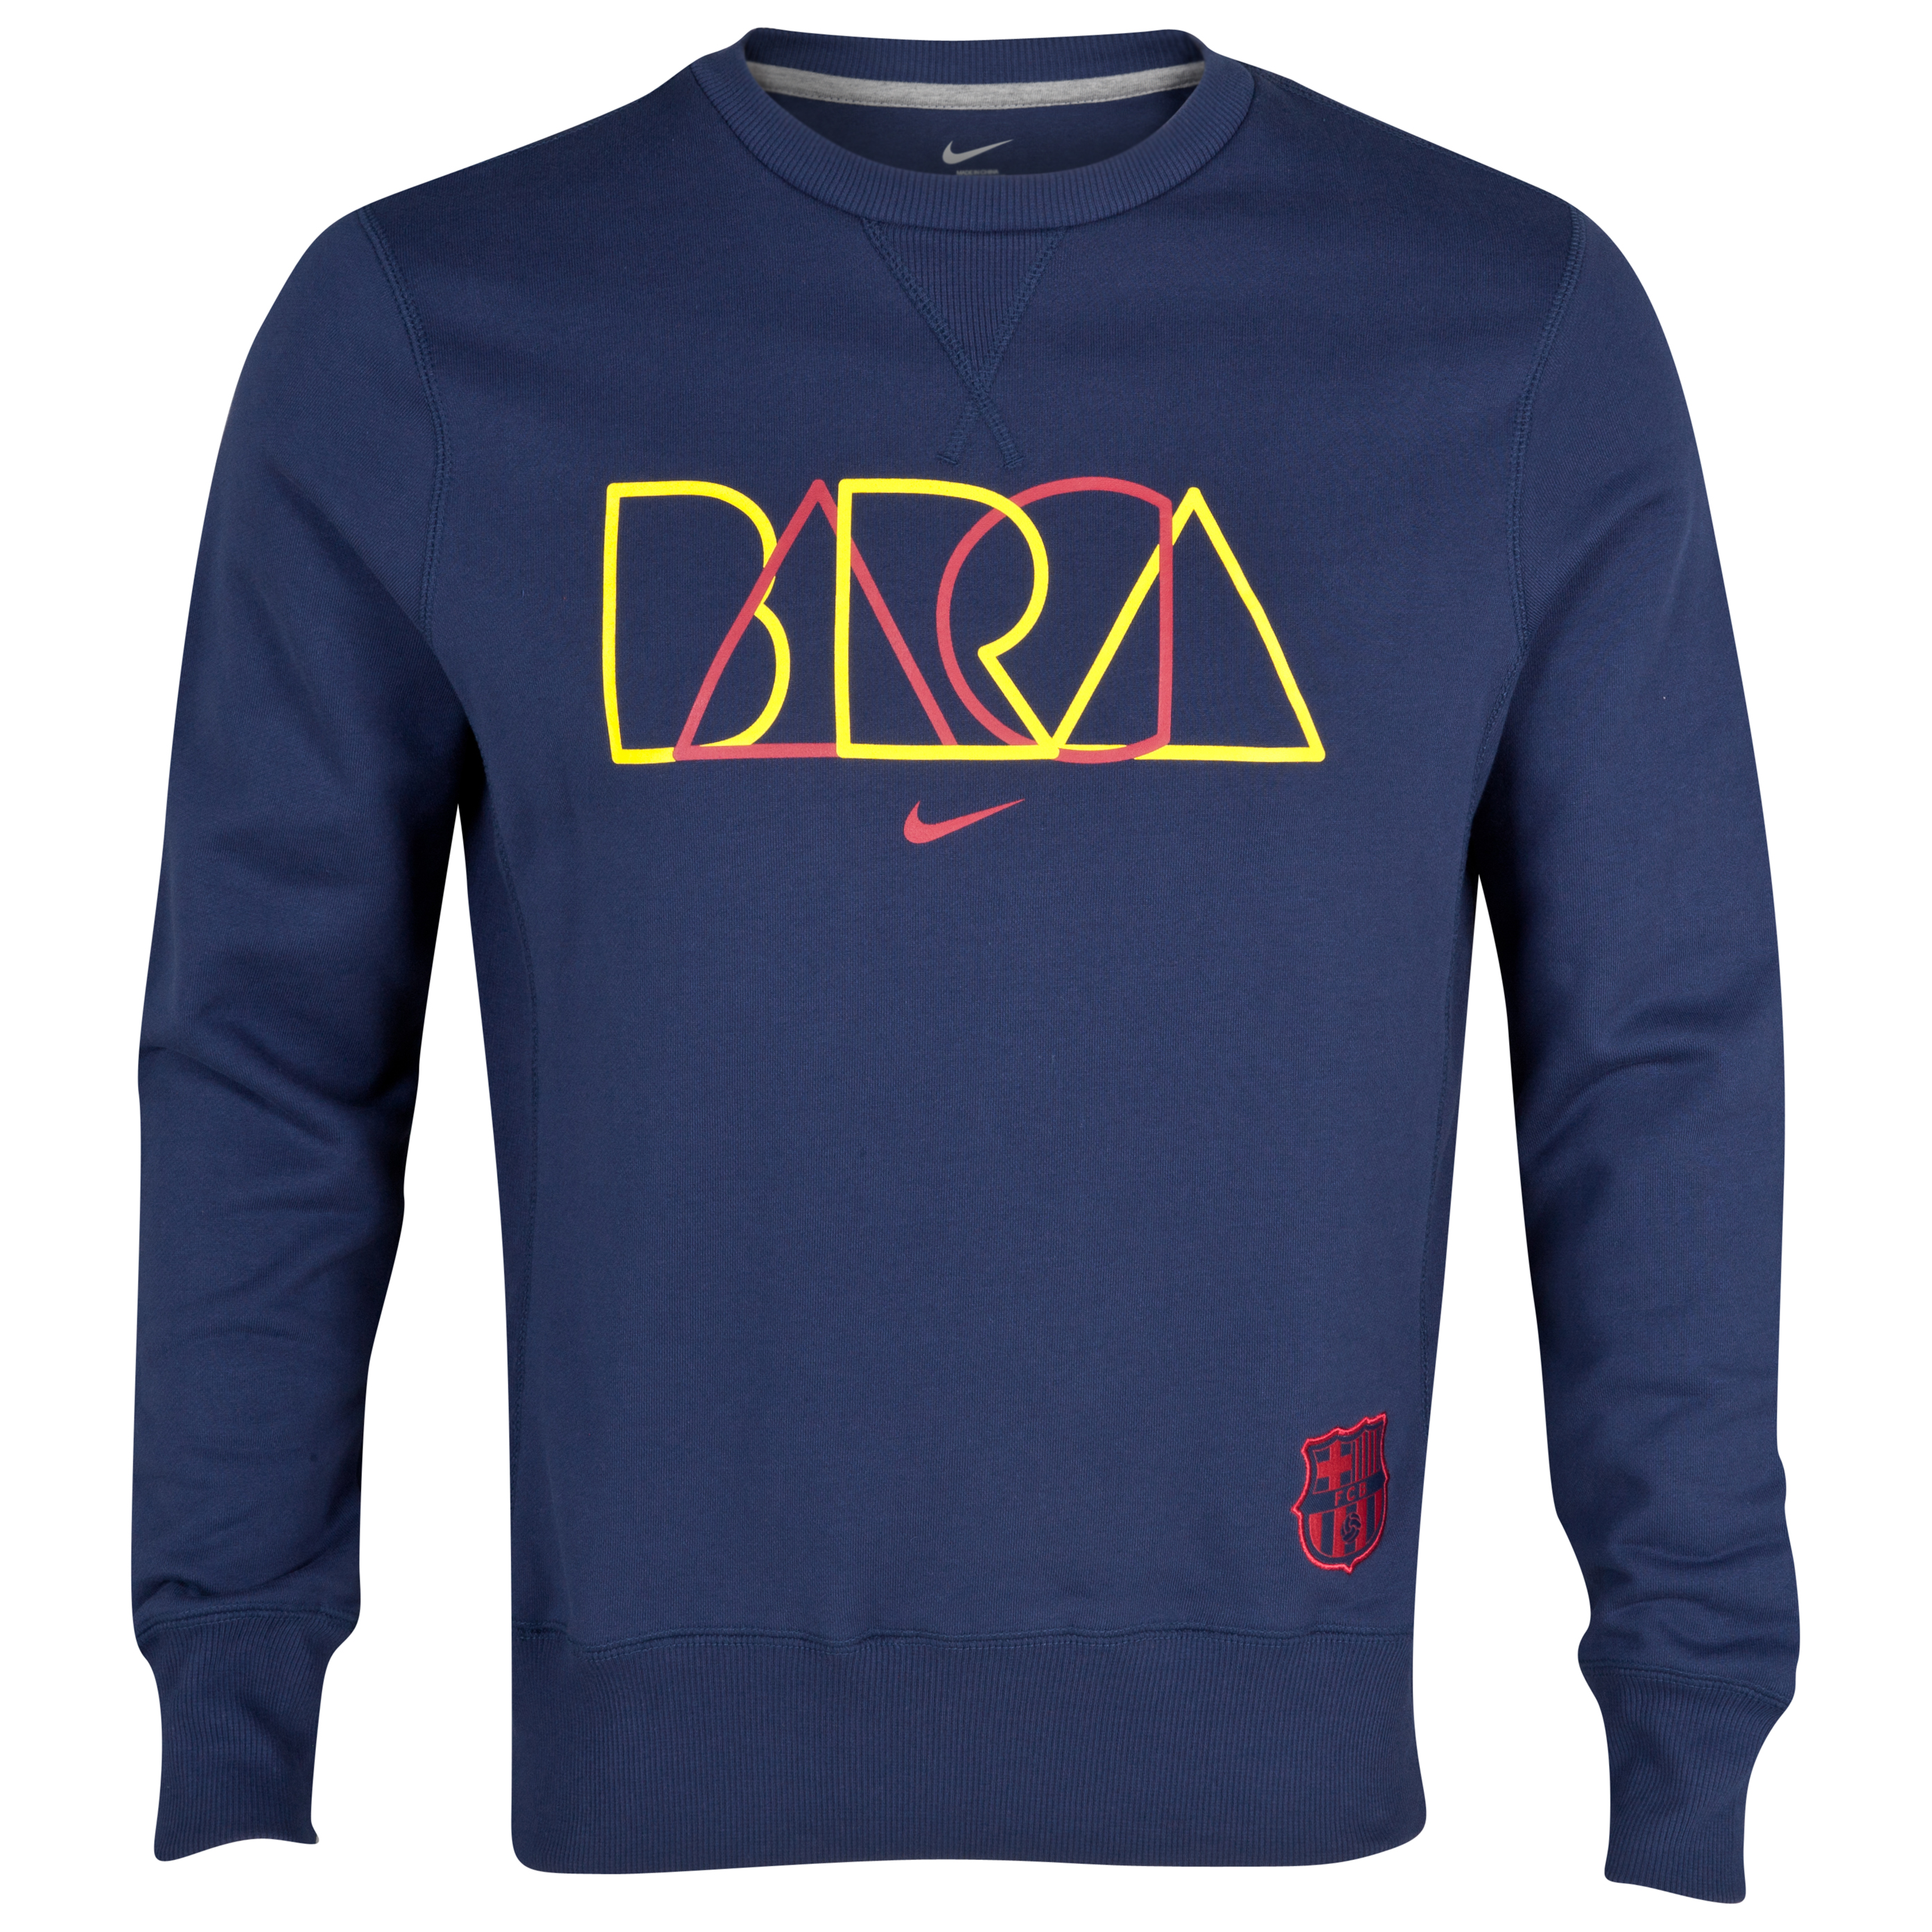 Barcelona Core Crew Sweatshirt - Midnight Navy/Stormred